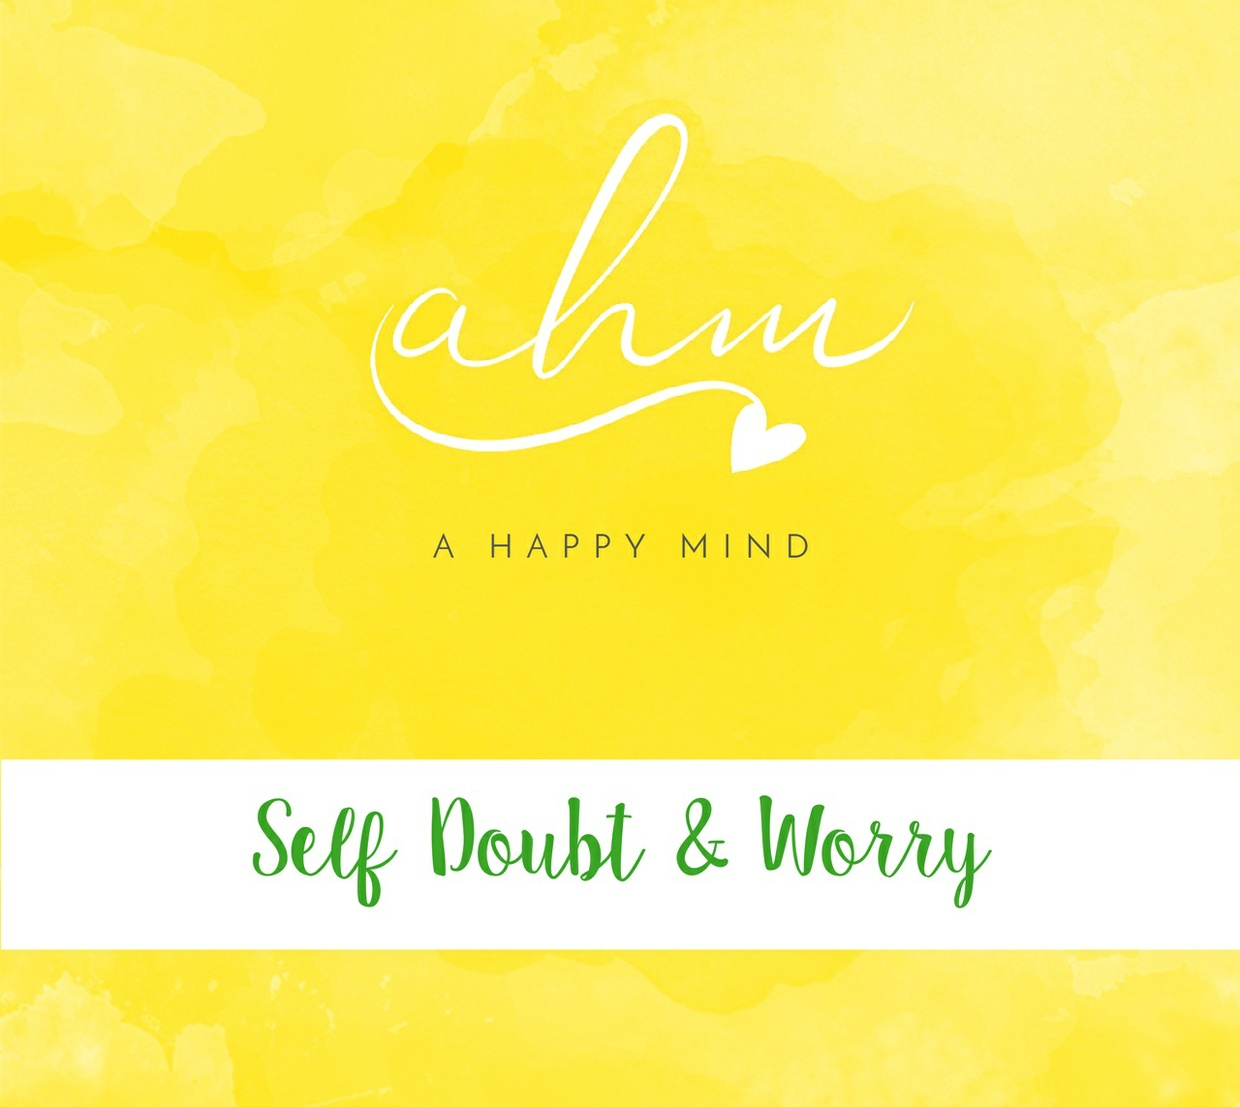 Self Doubt & Worry